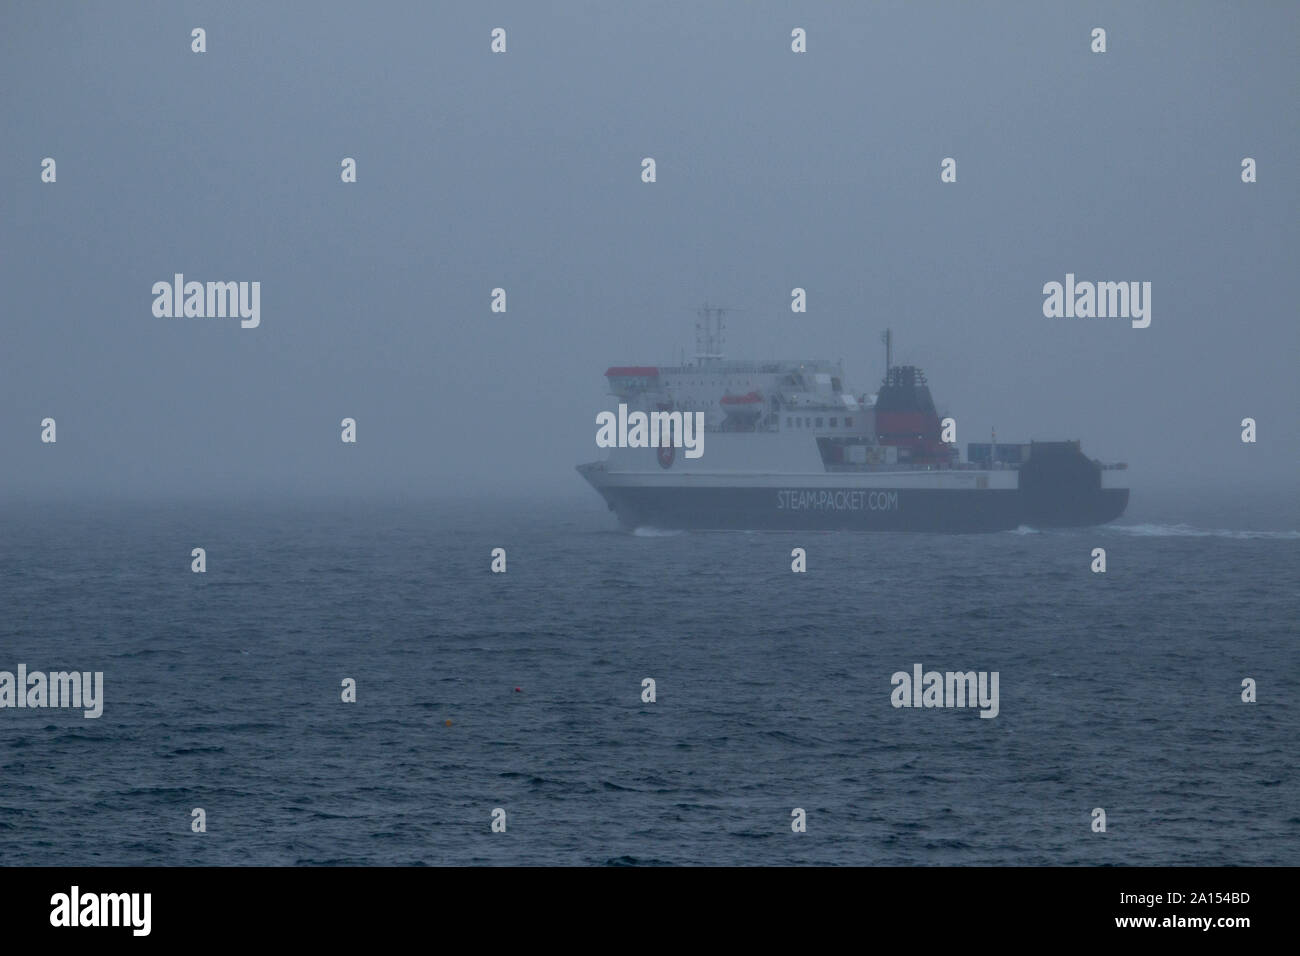 Douglas Isle Of Man 24th September 2019 Isle of Man Ferry Ben My Chree leaves Douglas for Heysham before disappearing into the mist Credit: Photographing North/Alamy Live News Stock Photo